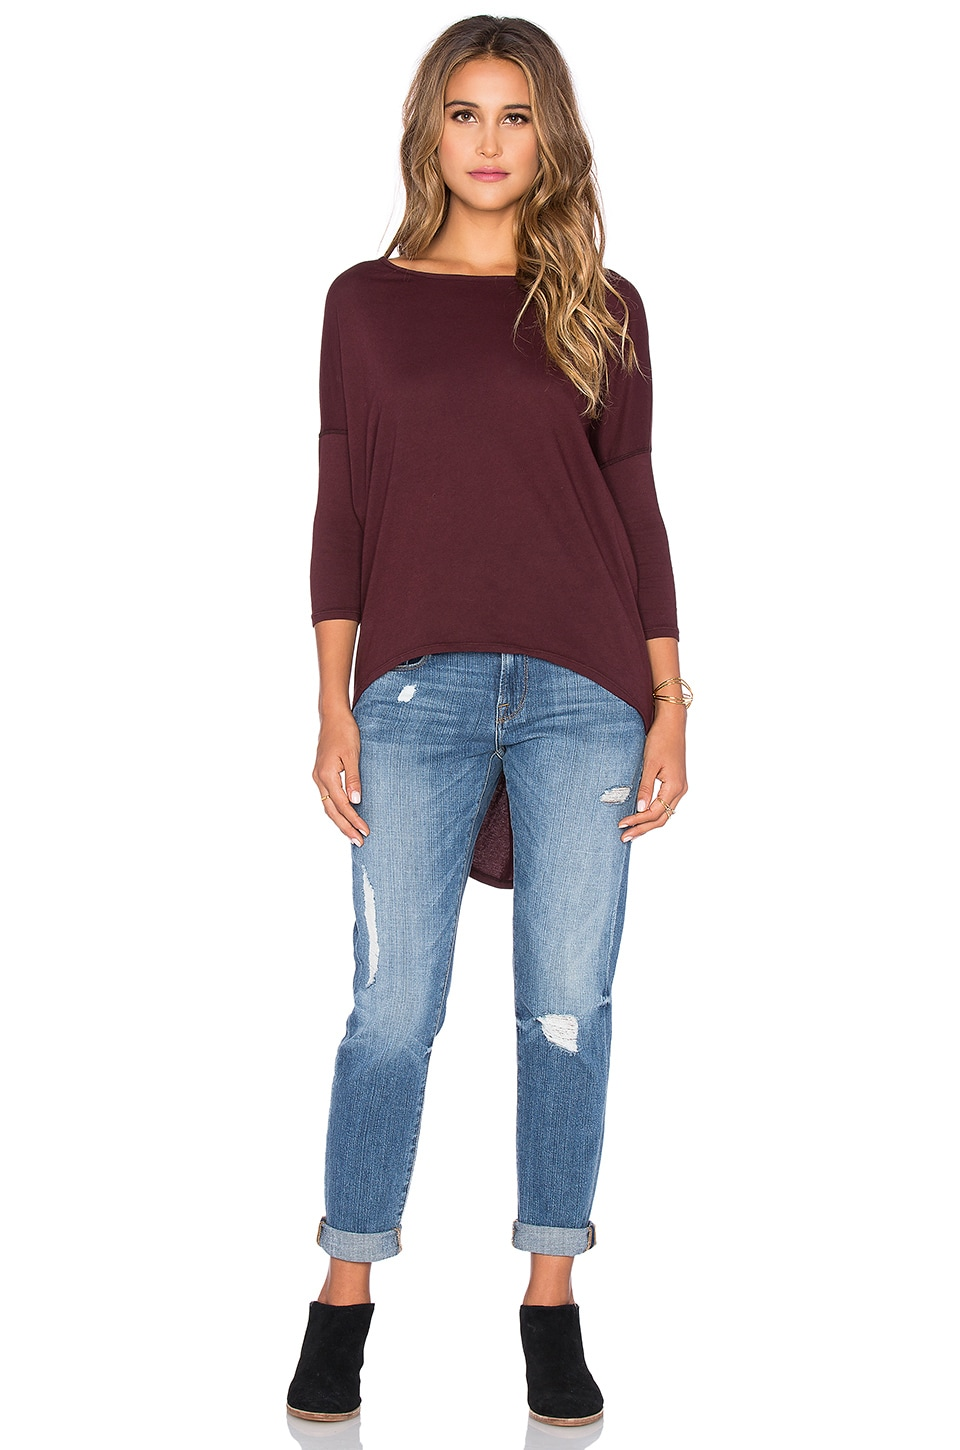 Bobi Light Weight Jersey 3/4 Sleeve Dolman in Malbec